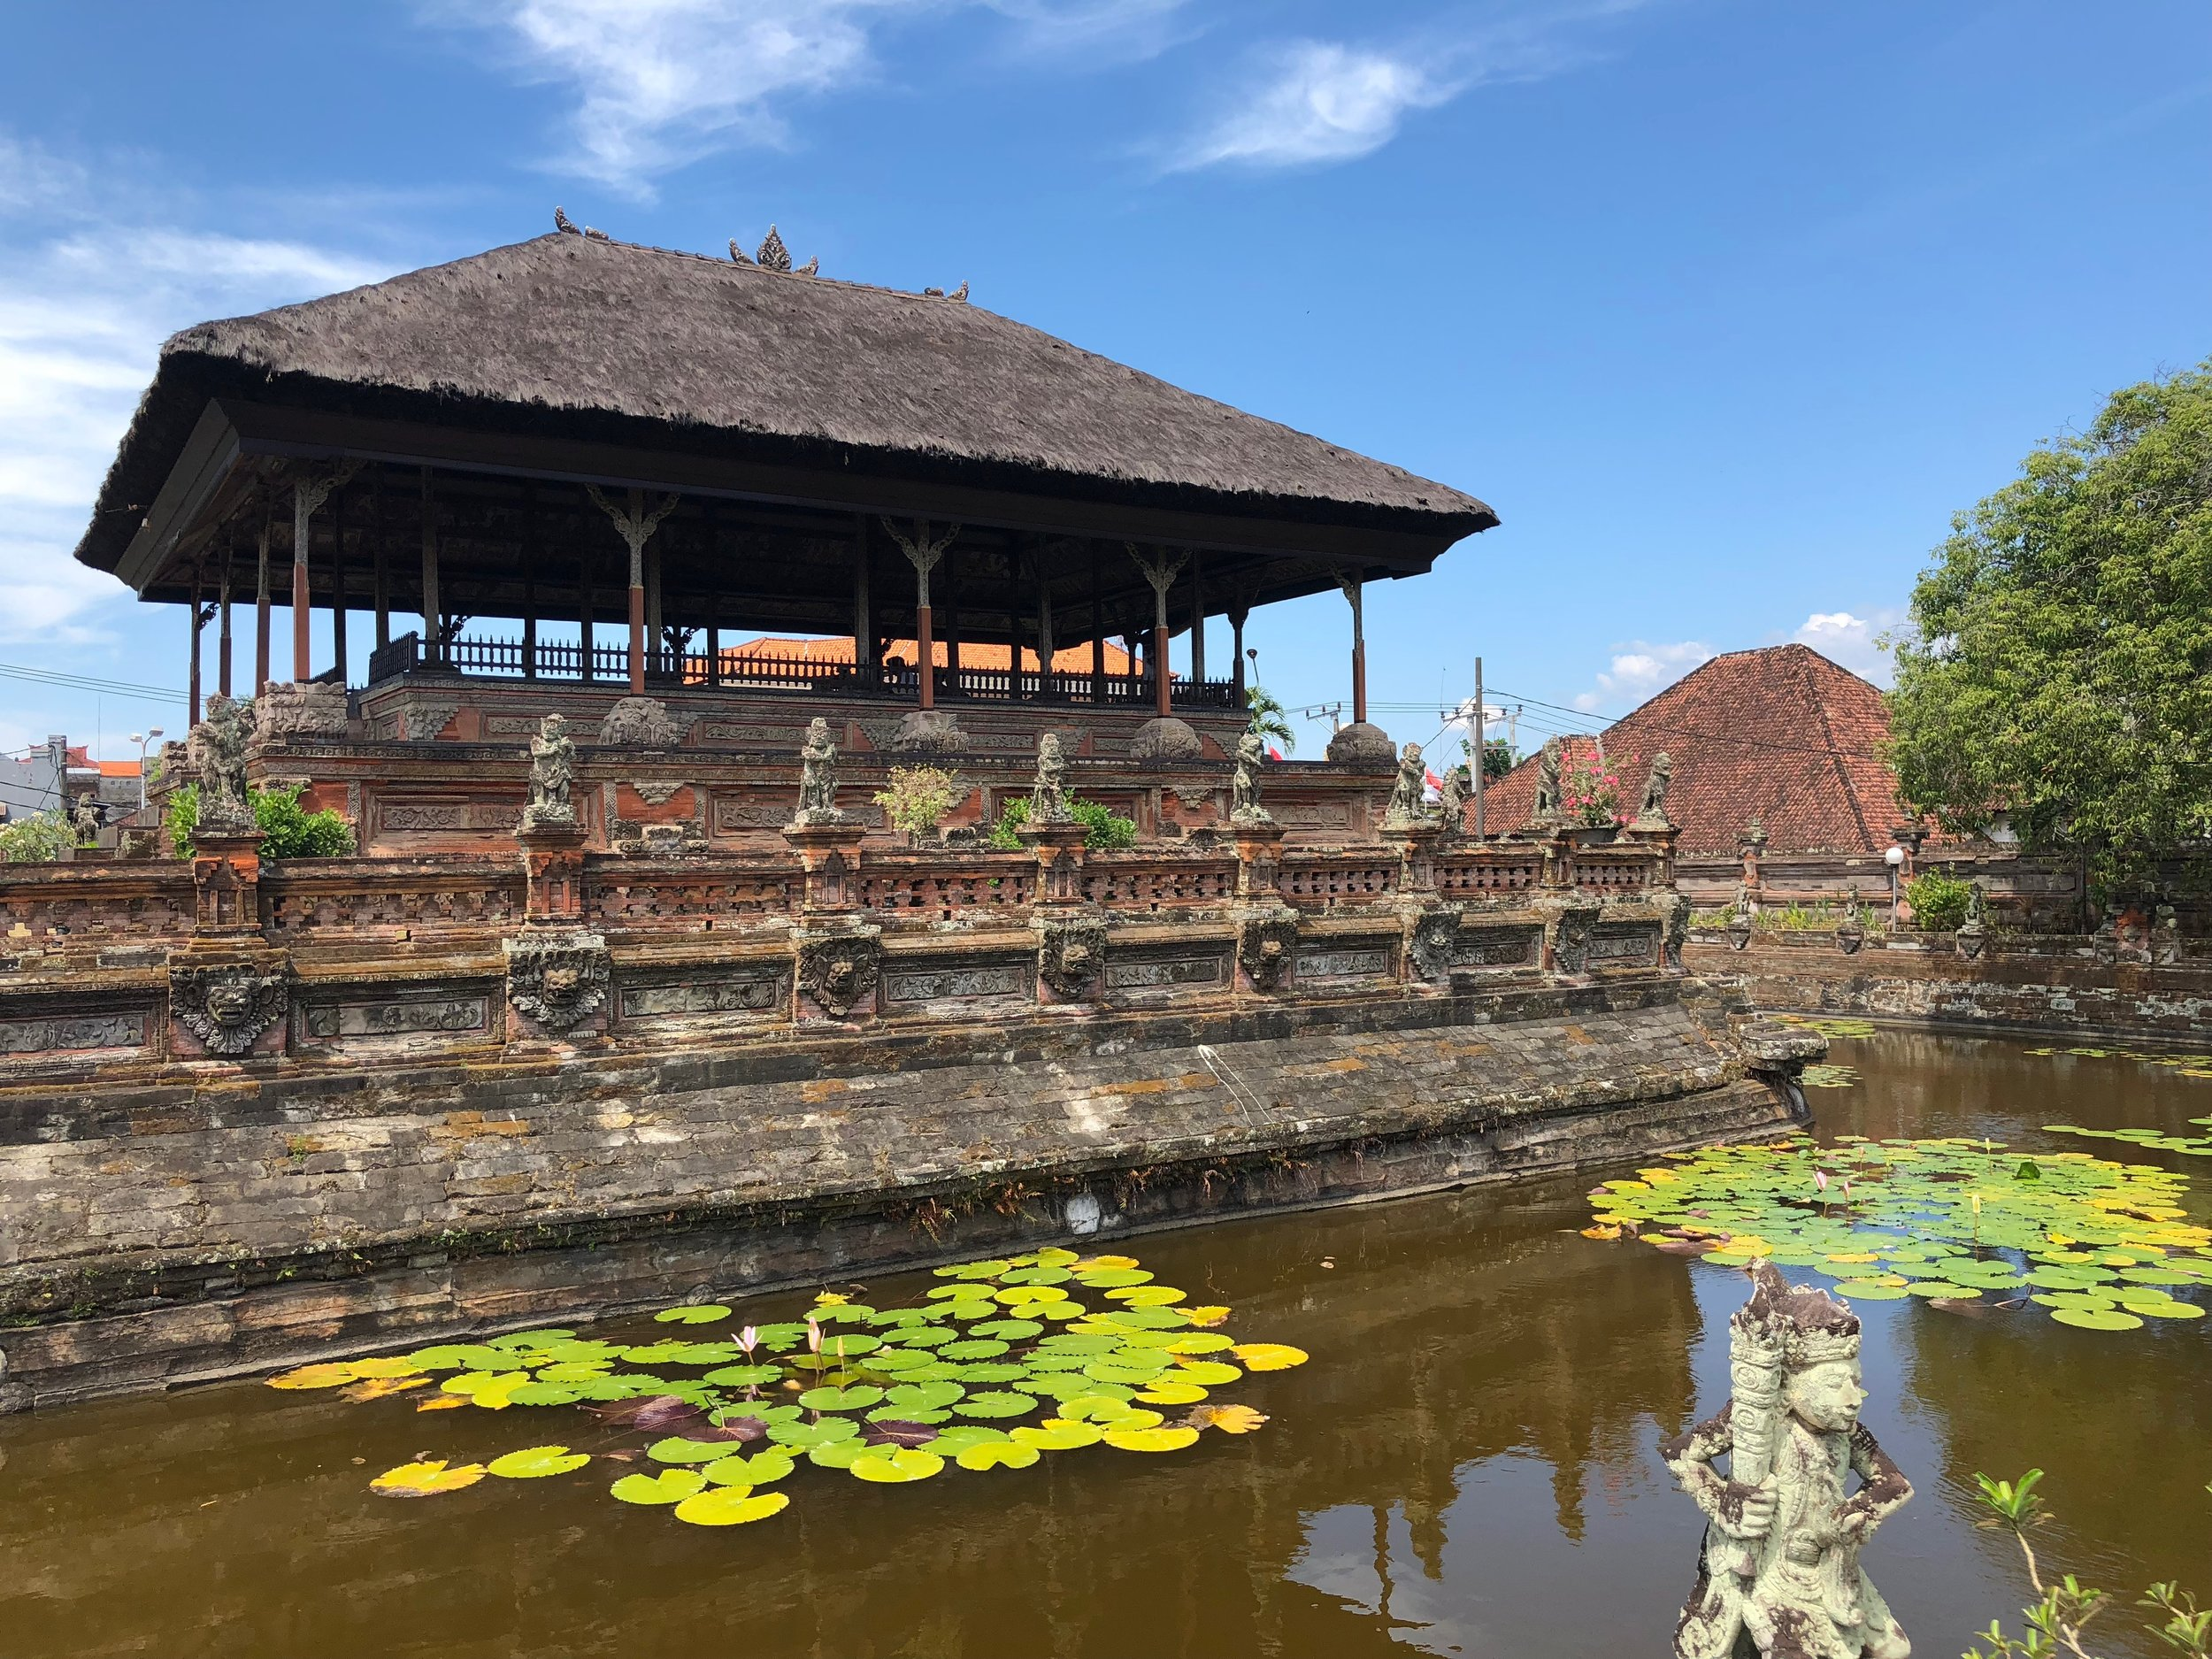 Klungkung consists of two main structures, but golly, they're fun to visit